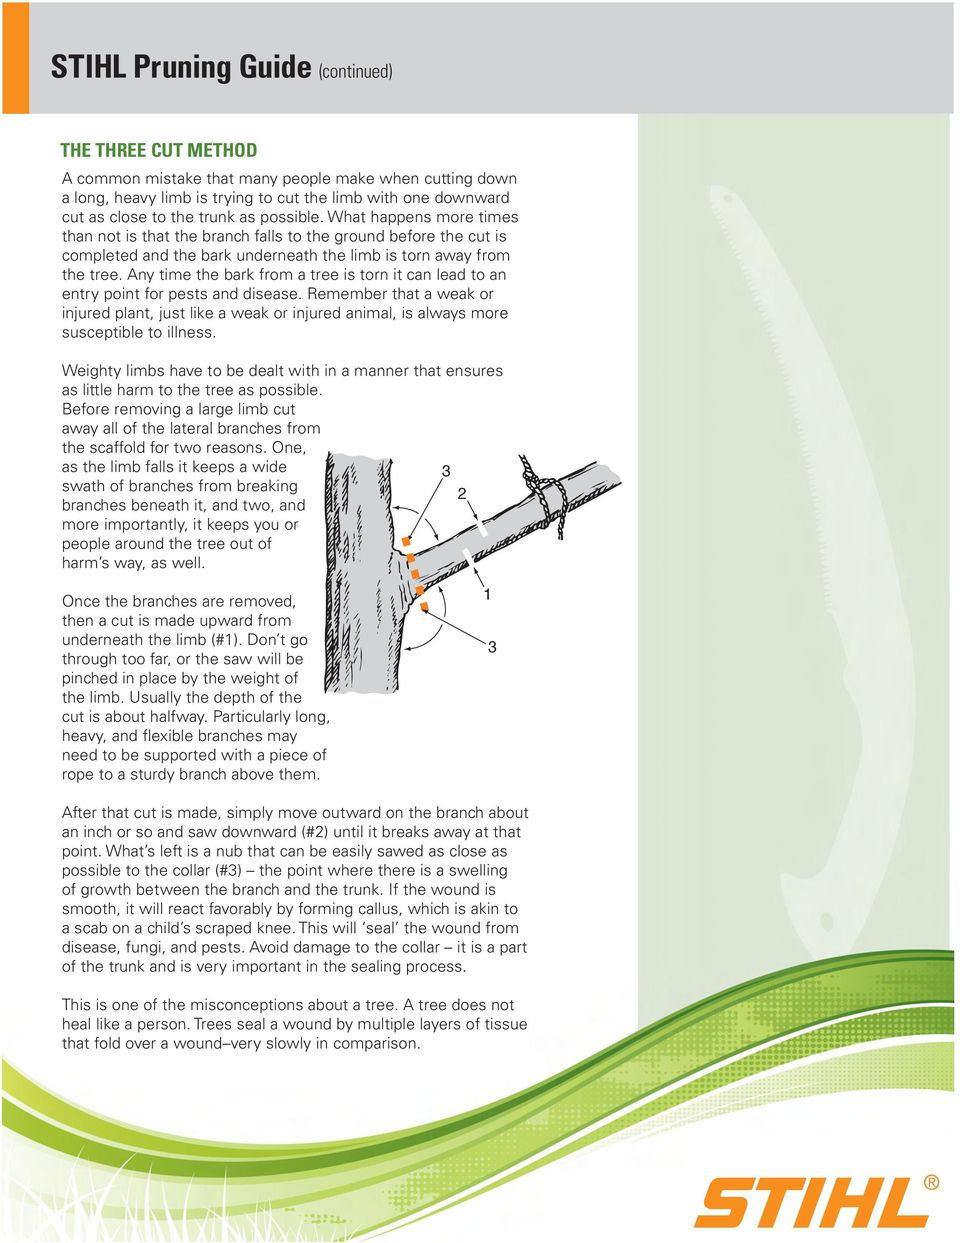 Any time the bark from a tree is torn it can lead to an entry point for pests and disease.